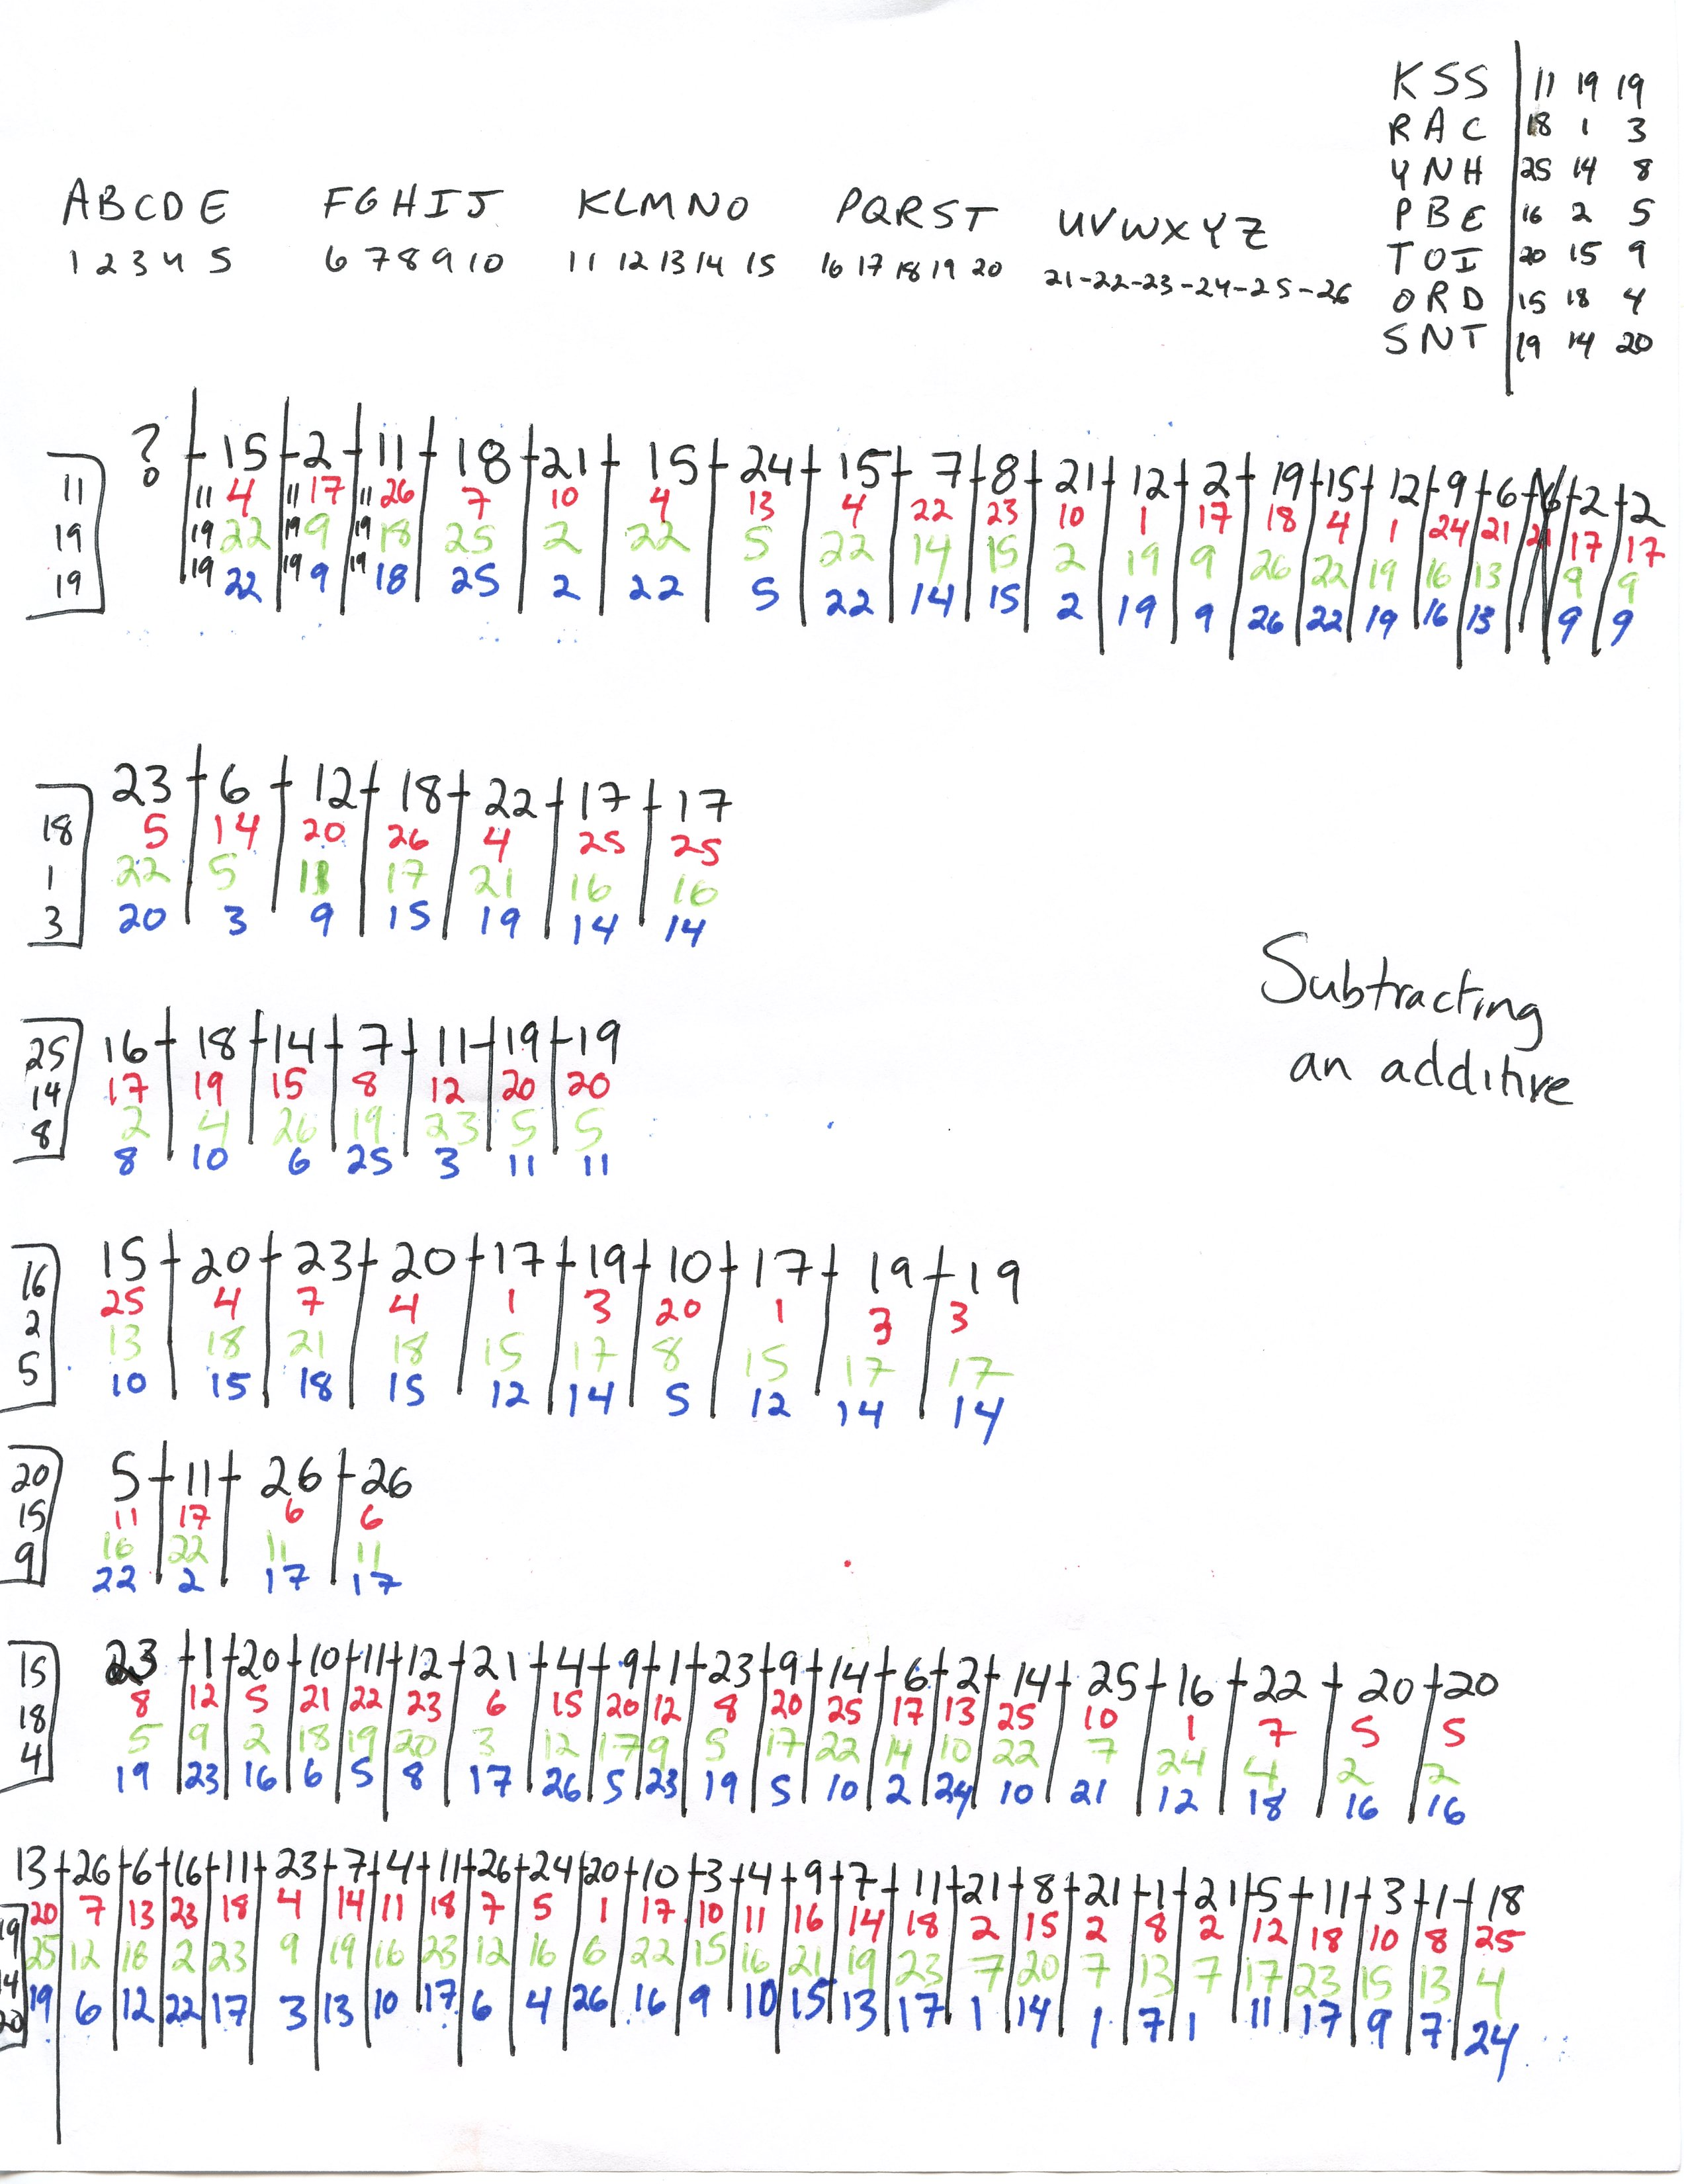 Subtracting Additives From Double Letter Divisions Of K4 Kryptos